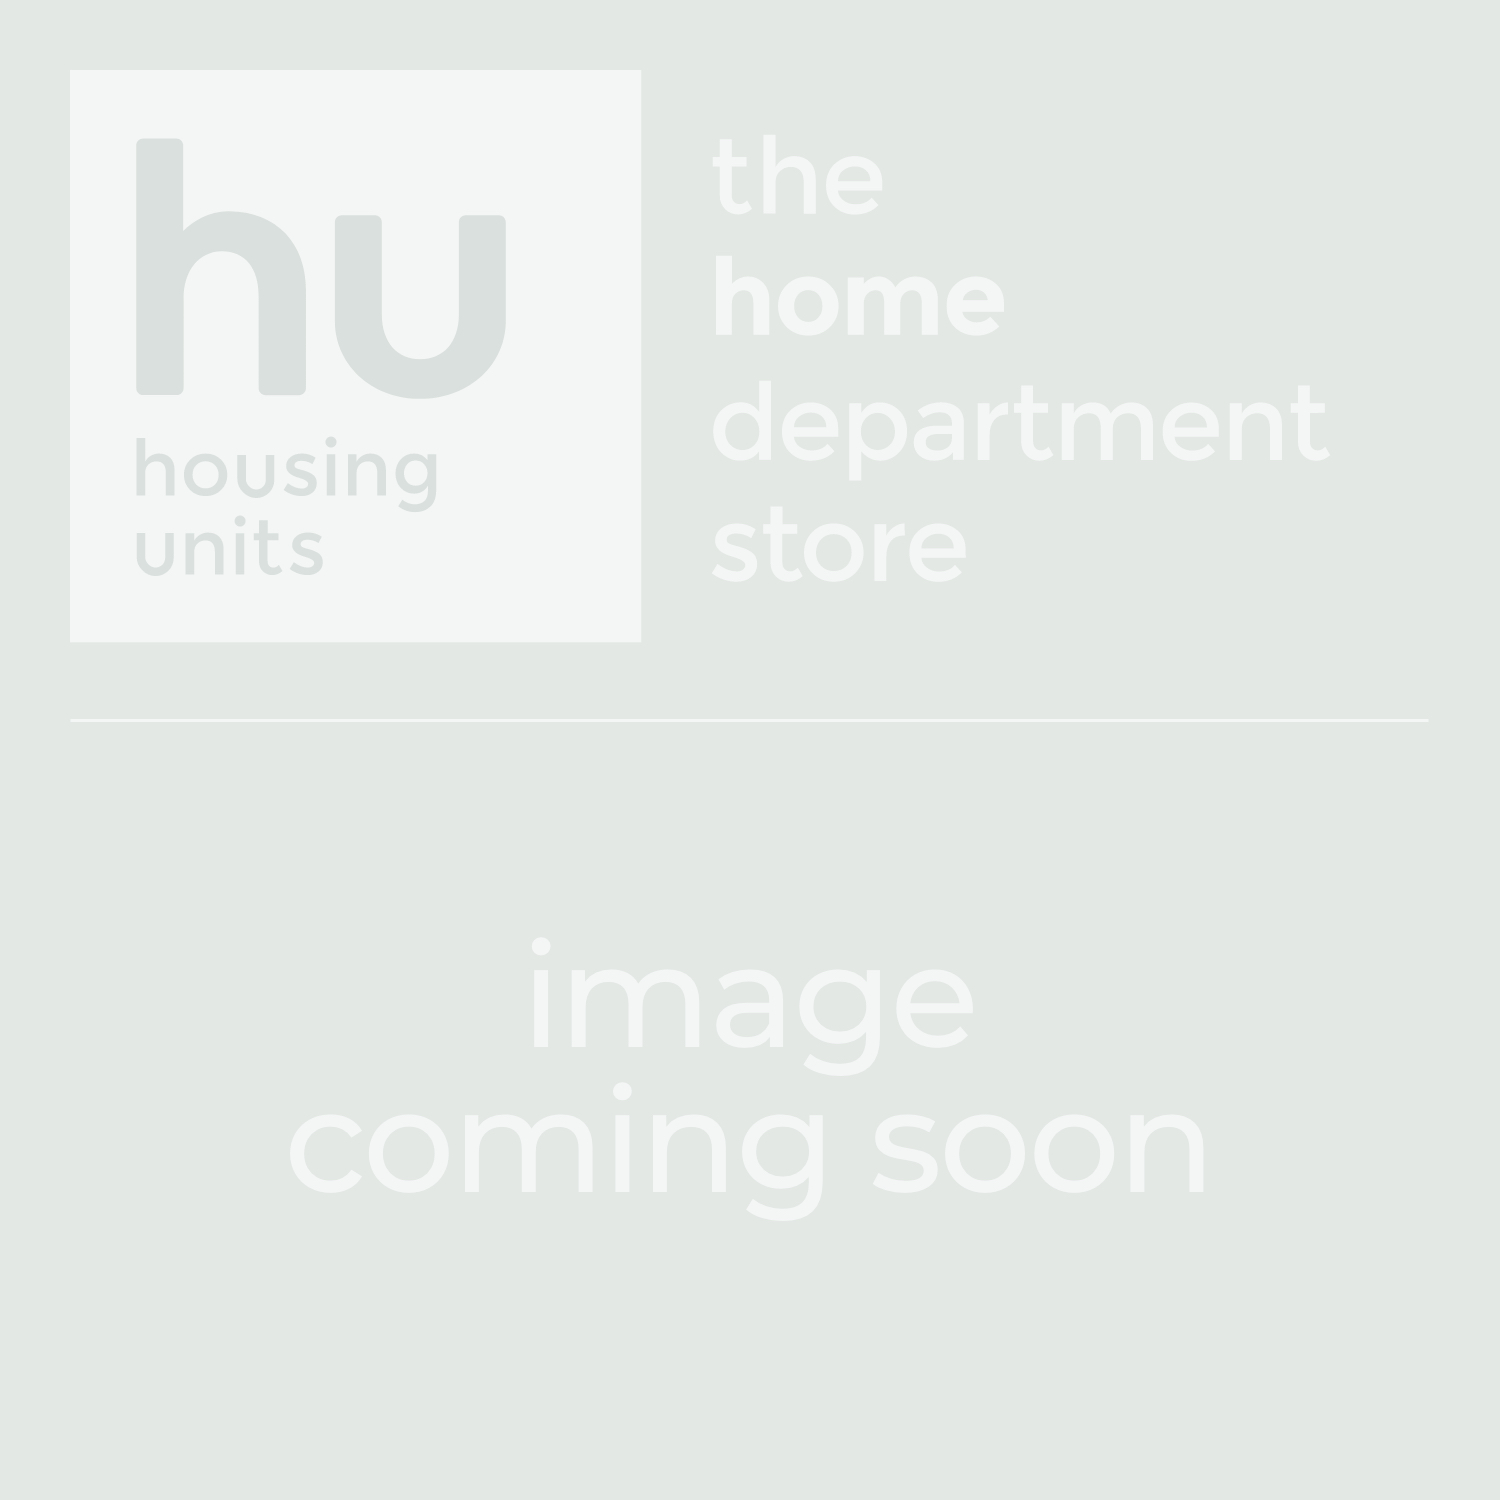 Bugatti Volo Chrome Toaster | Housing Units